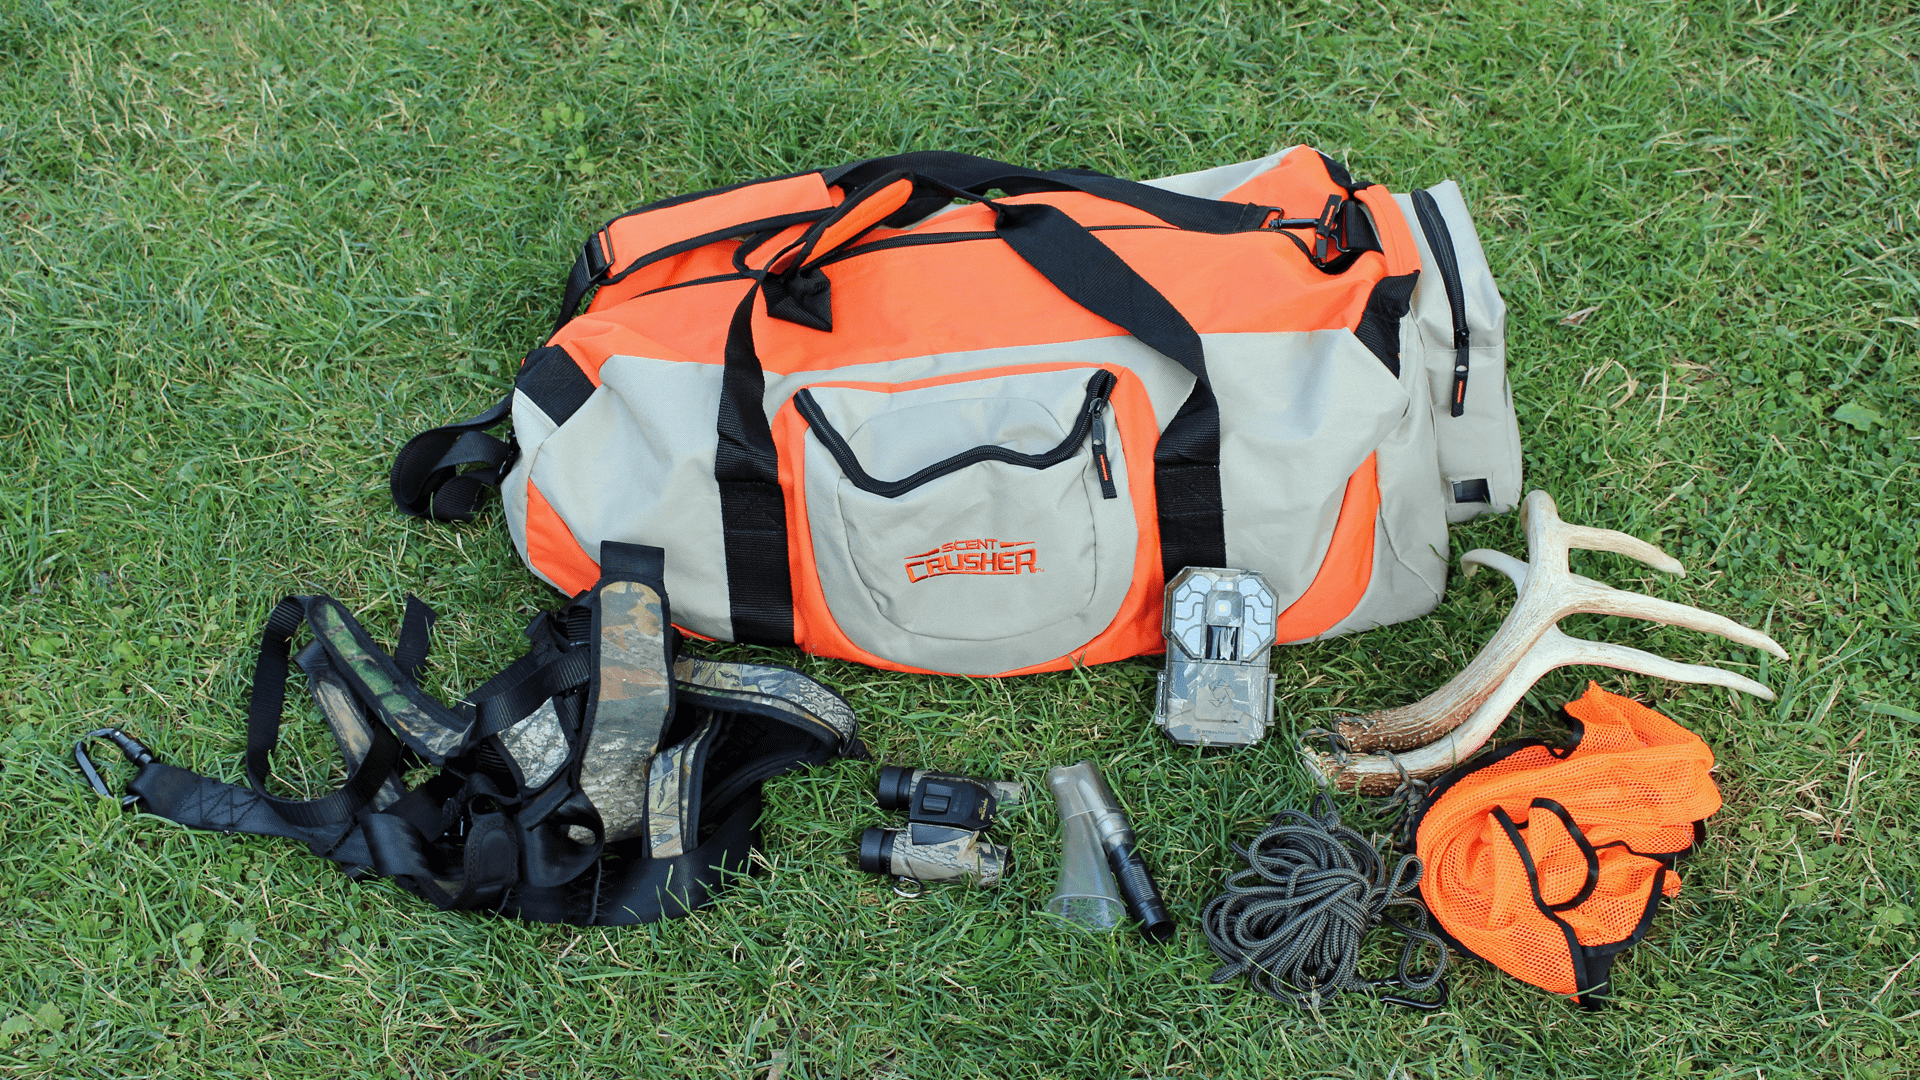 scent-crusher-gear-bag